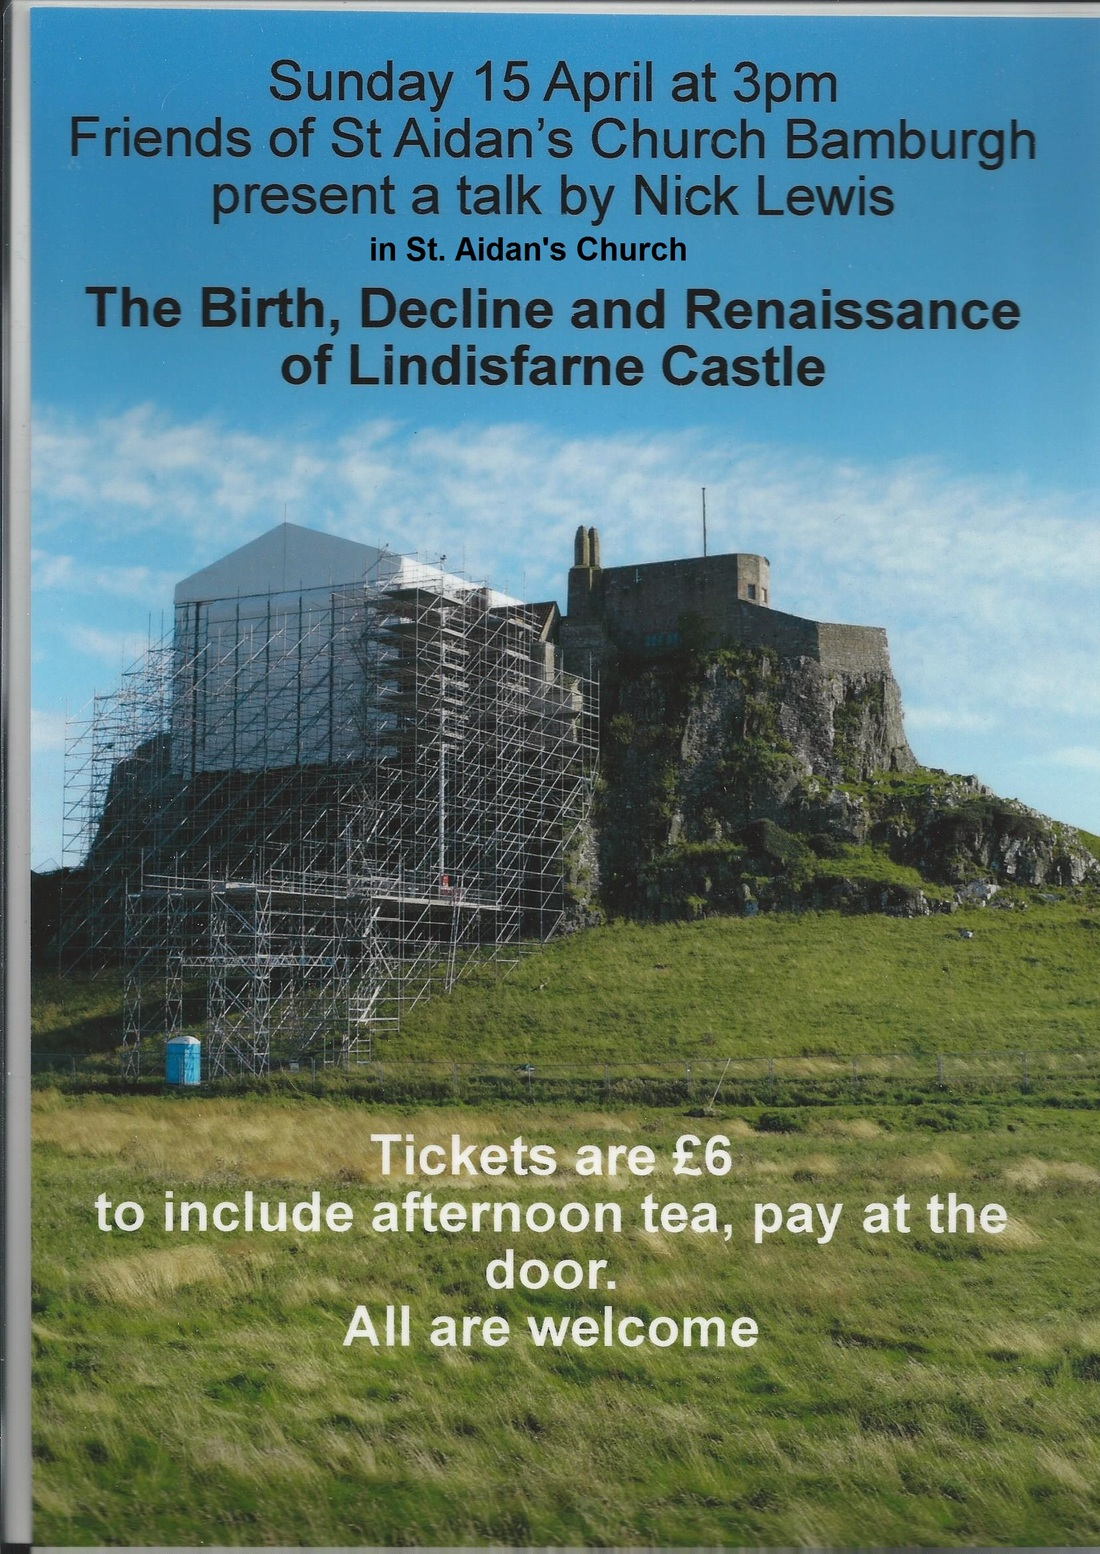 The Birth, Decline and Renaissance of Lindisfarne Castle